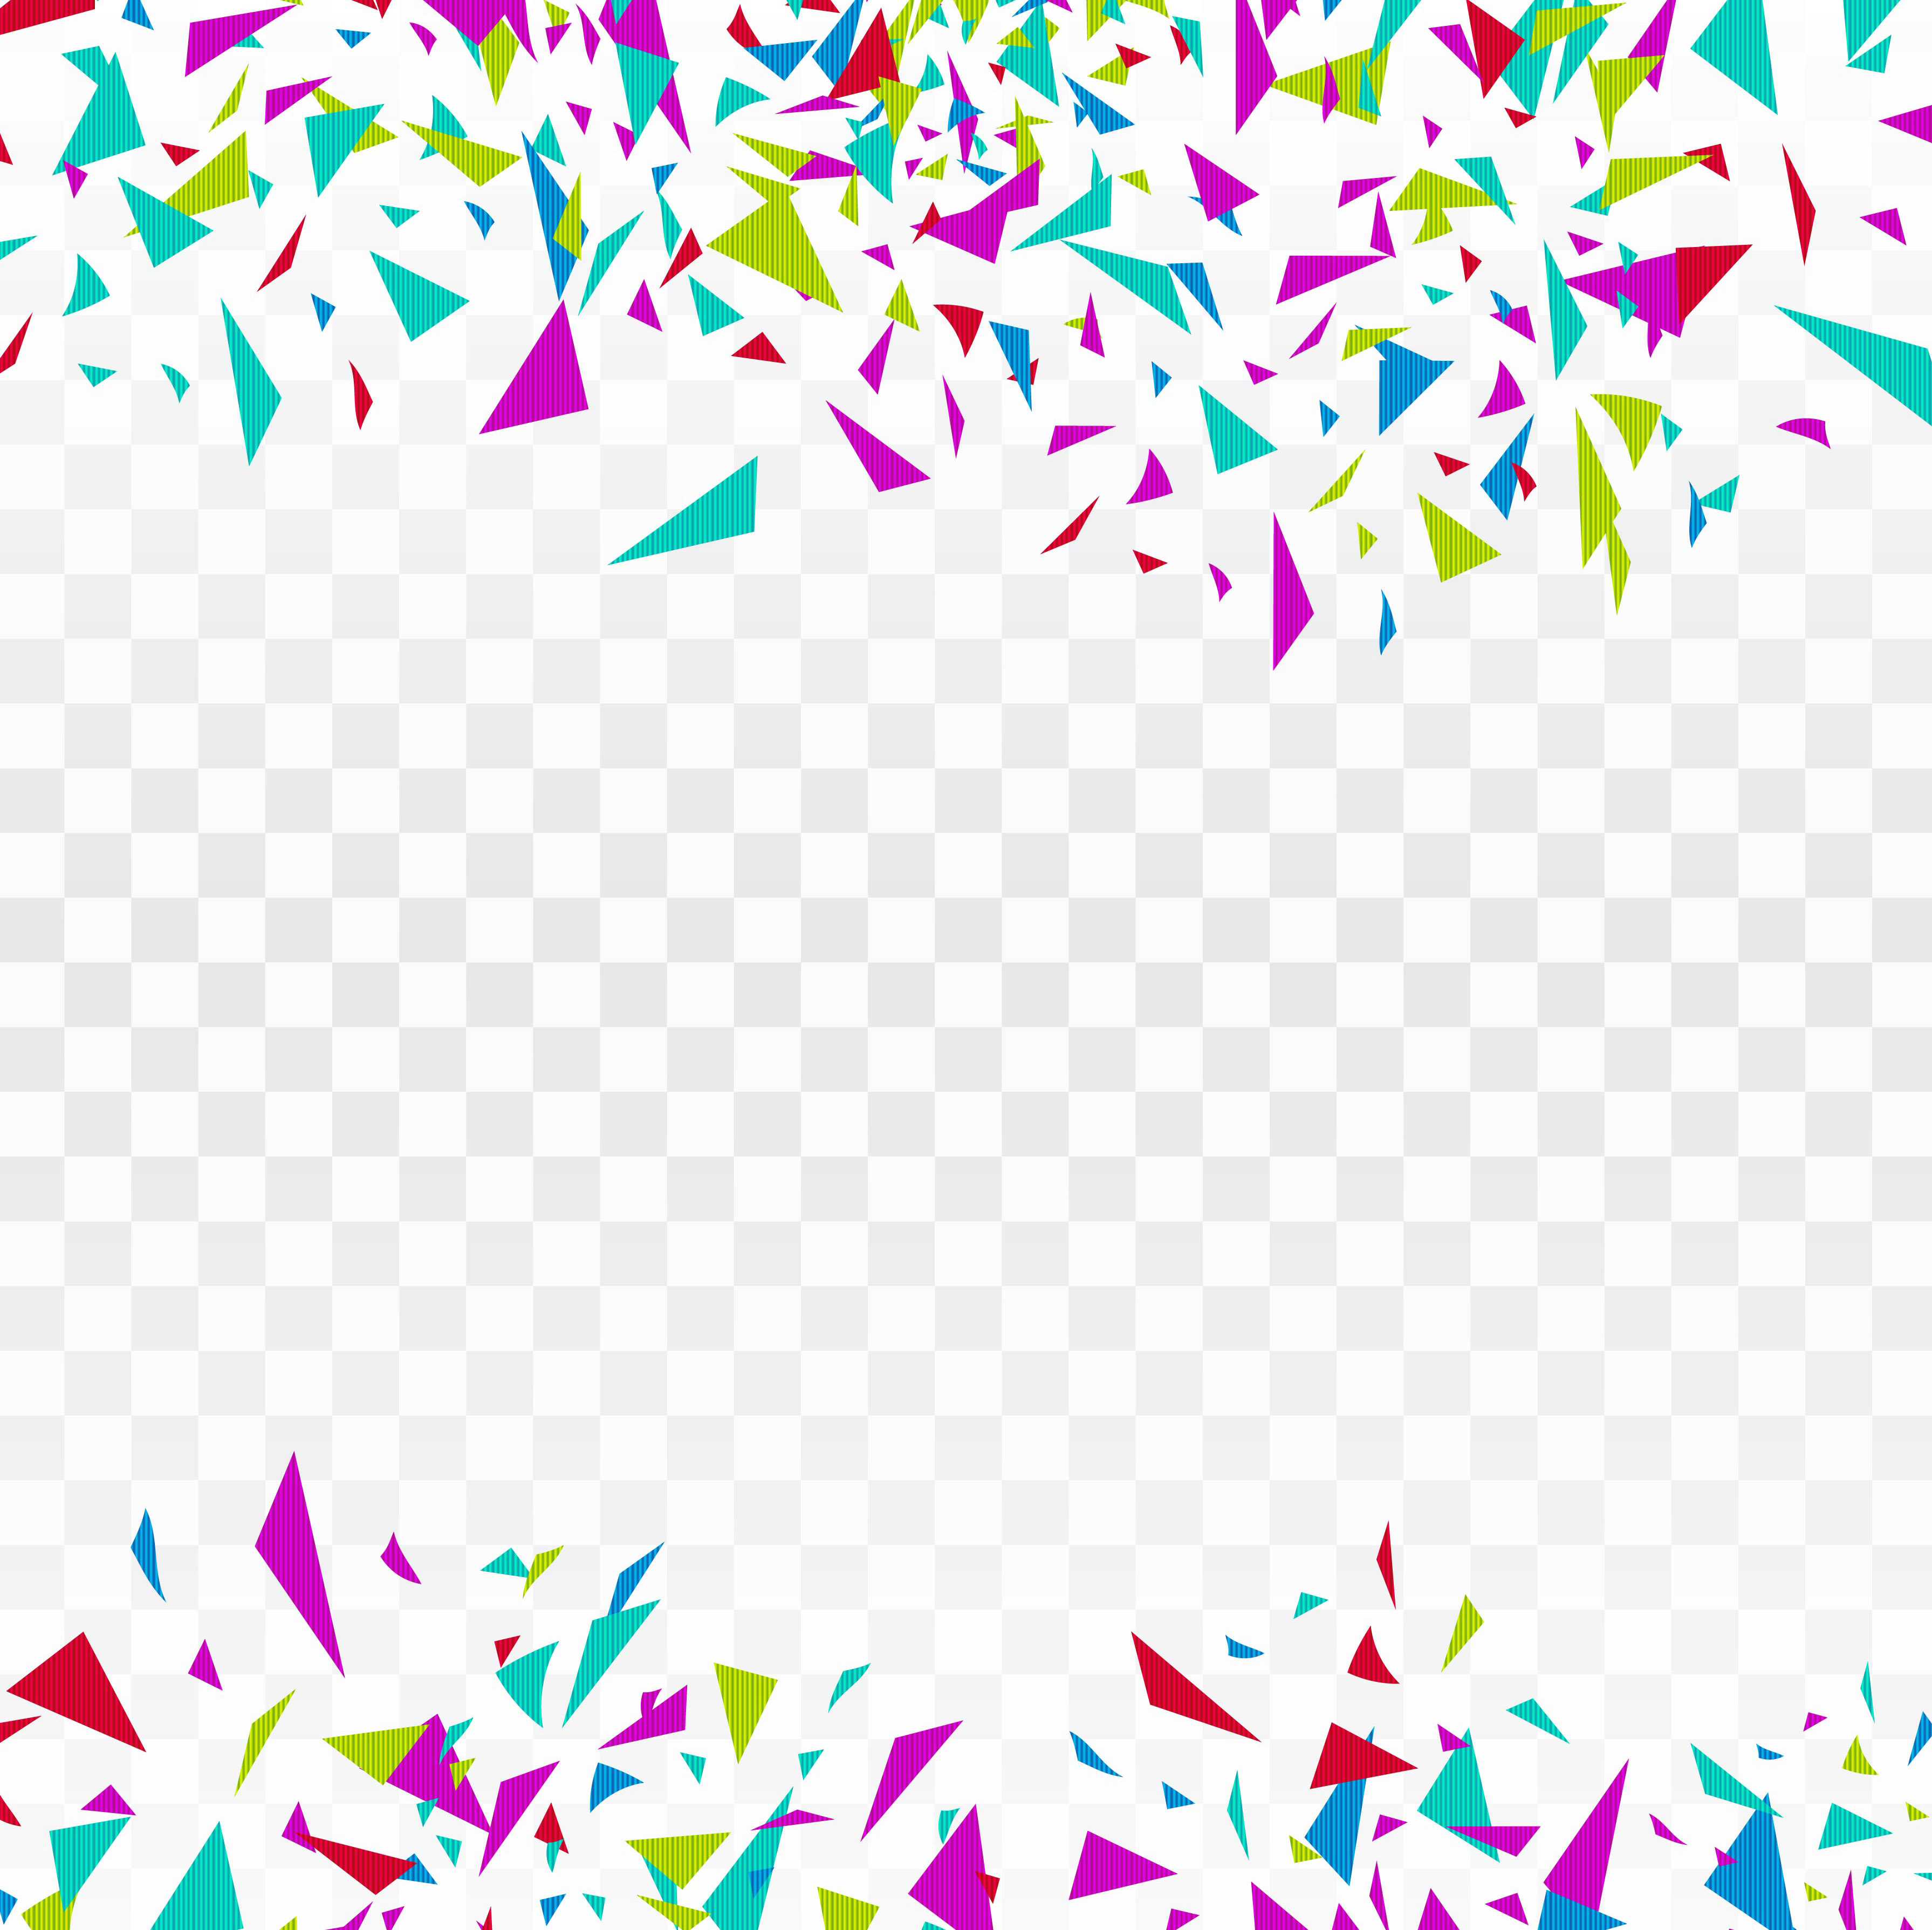 abstract background party celebration colorful confetti design